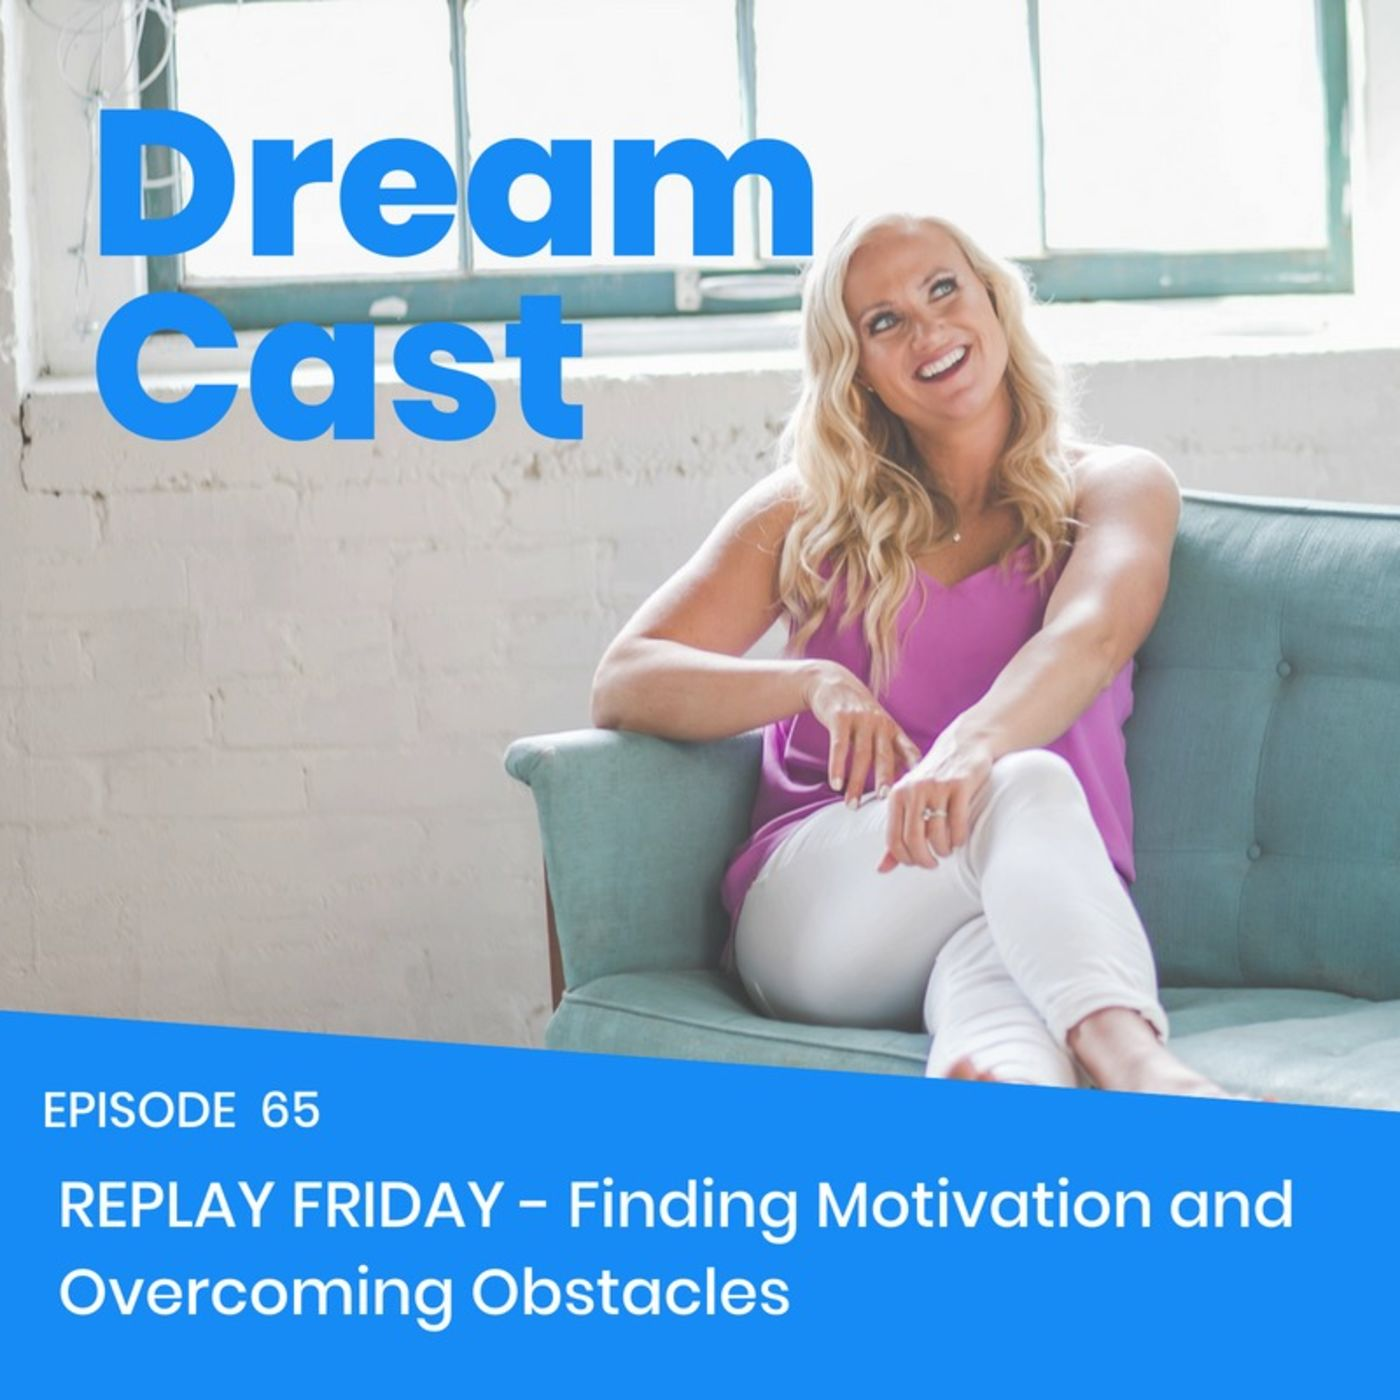 Episode 65 - Replay Friday: Finding Motivation and Overcoming Obstacles